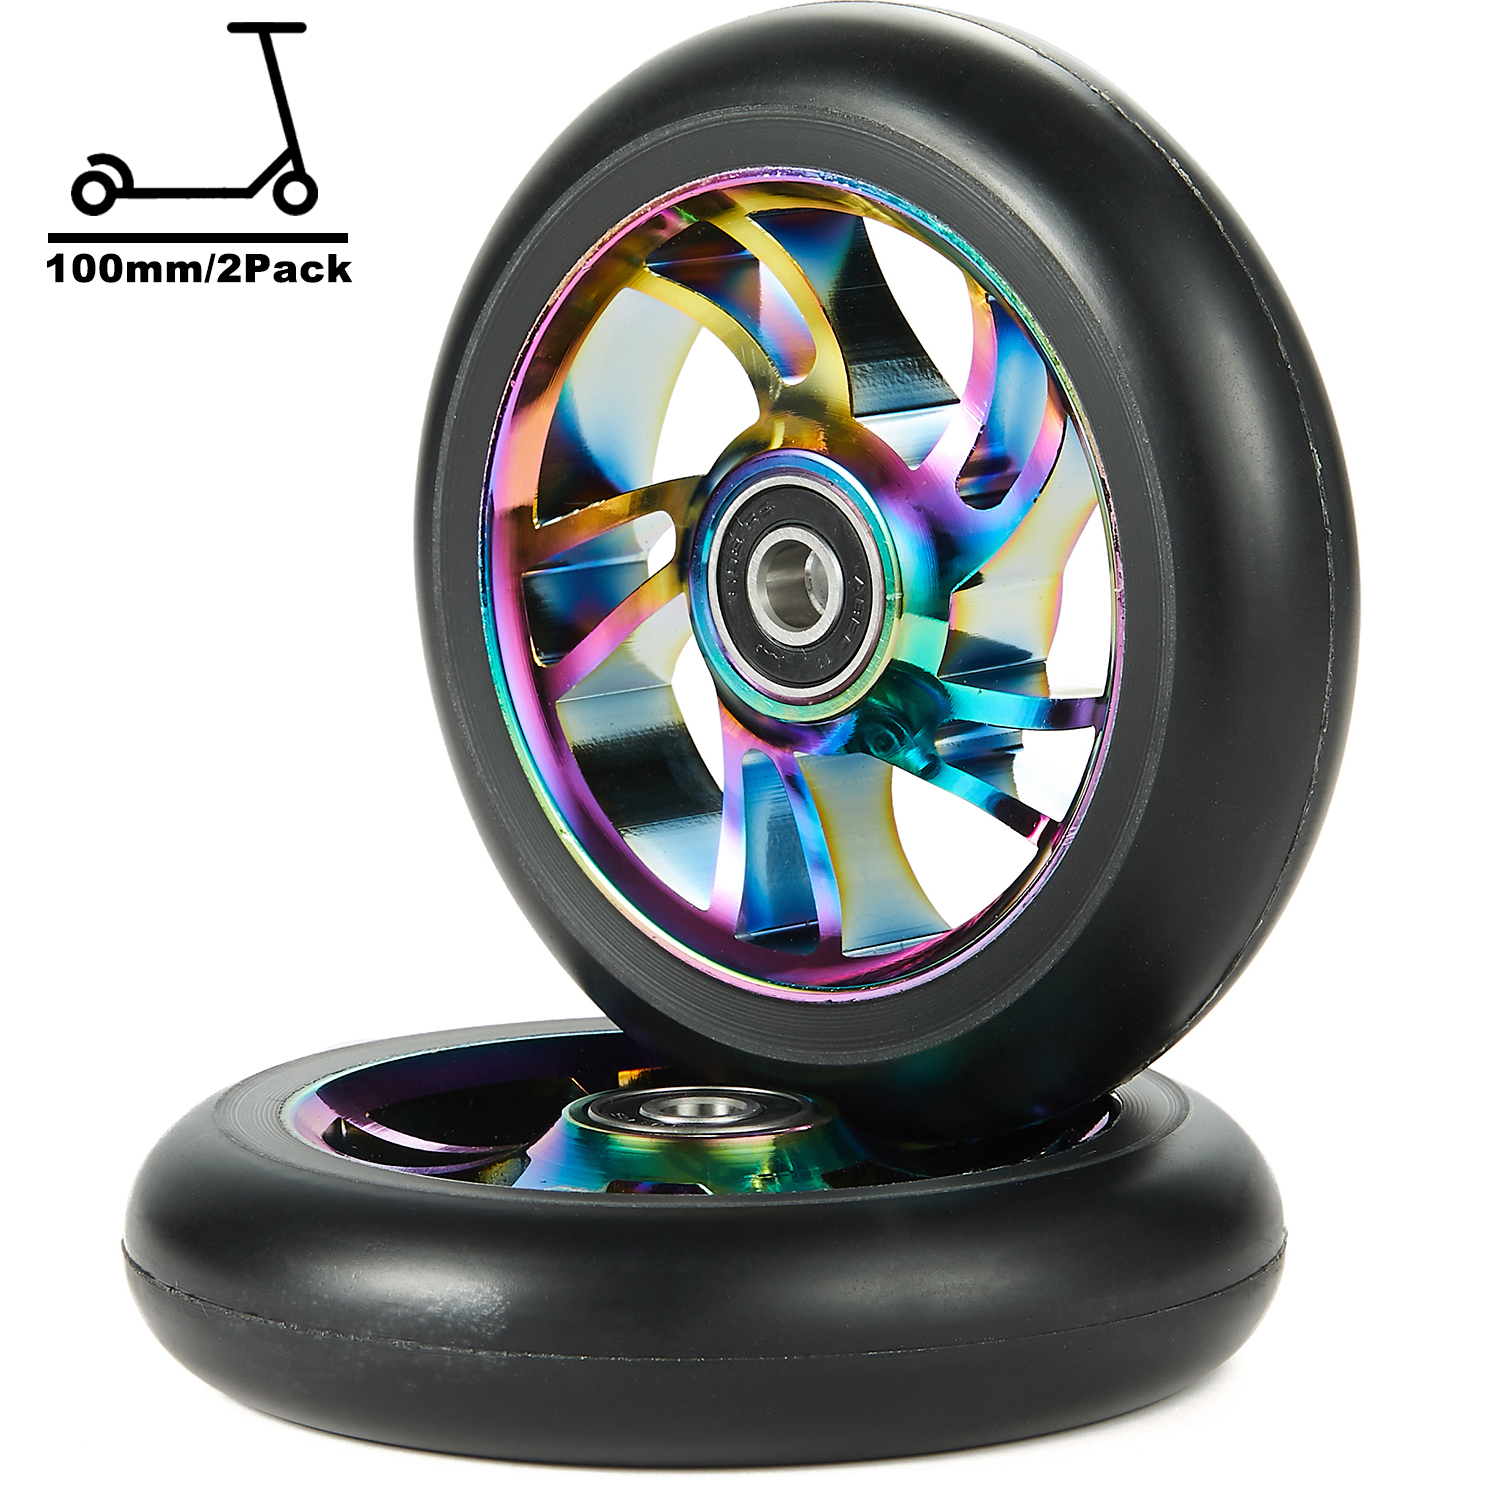 Compleet 2 Pcs 100 Mm Pro Stunt Scooter Vervanging Wielen Met ABEC-9 Lager-Neo Chrome